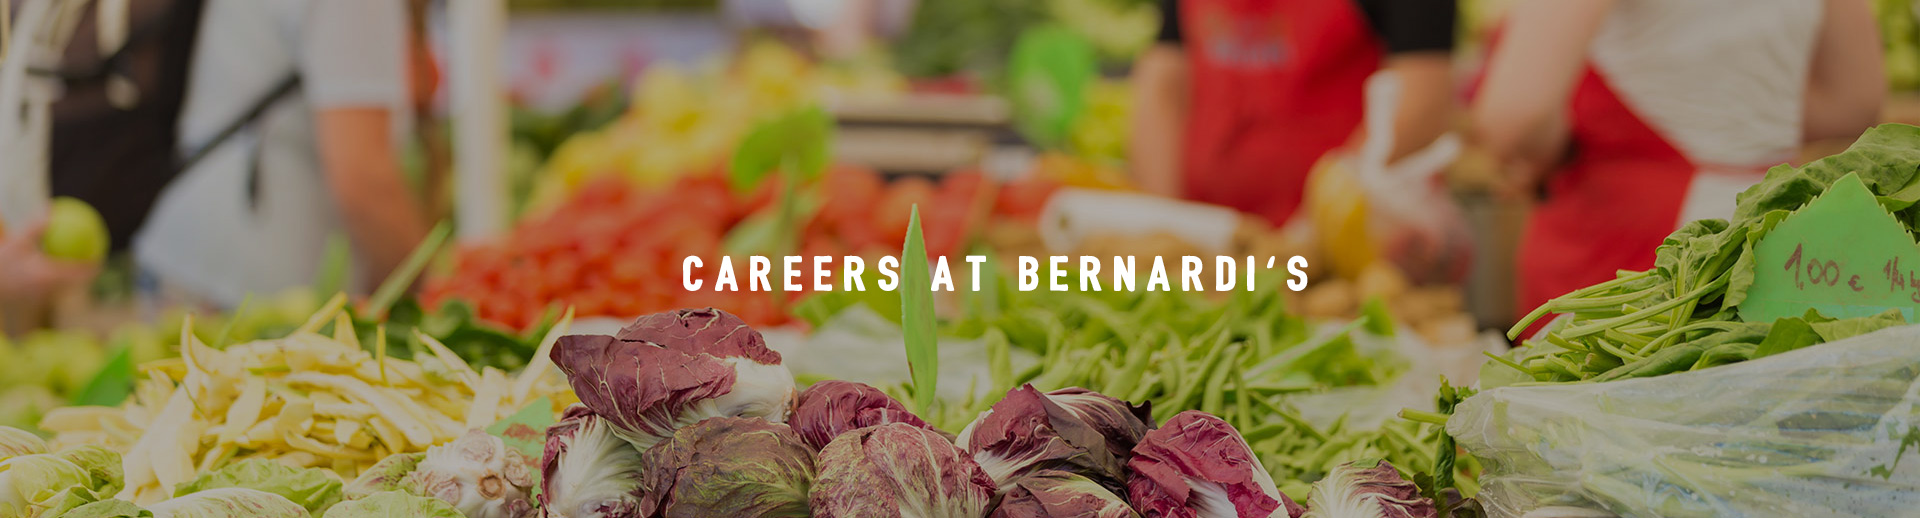 Careers at Bernardi's